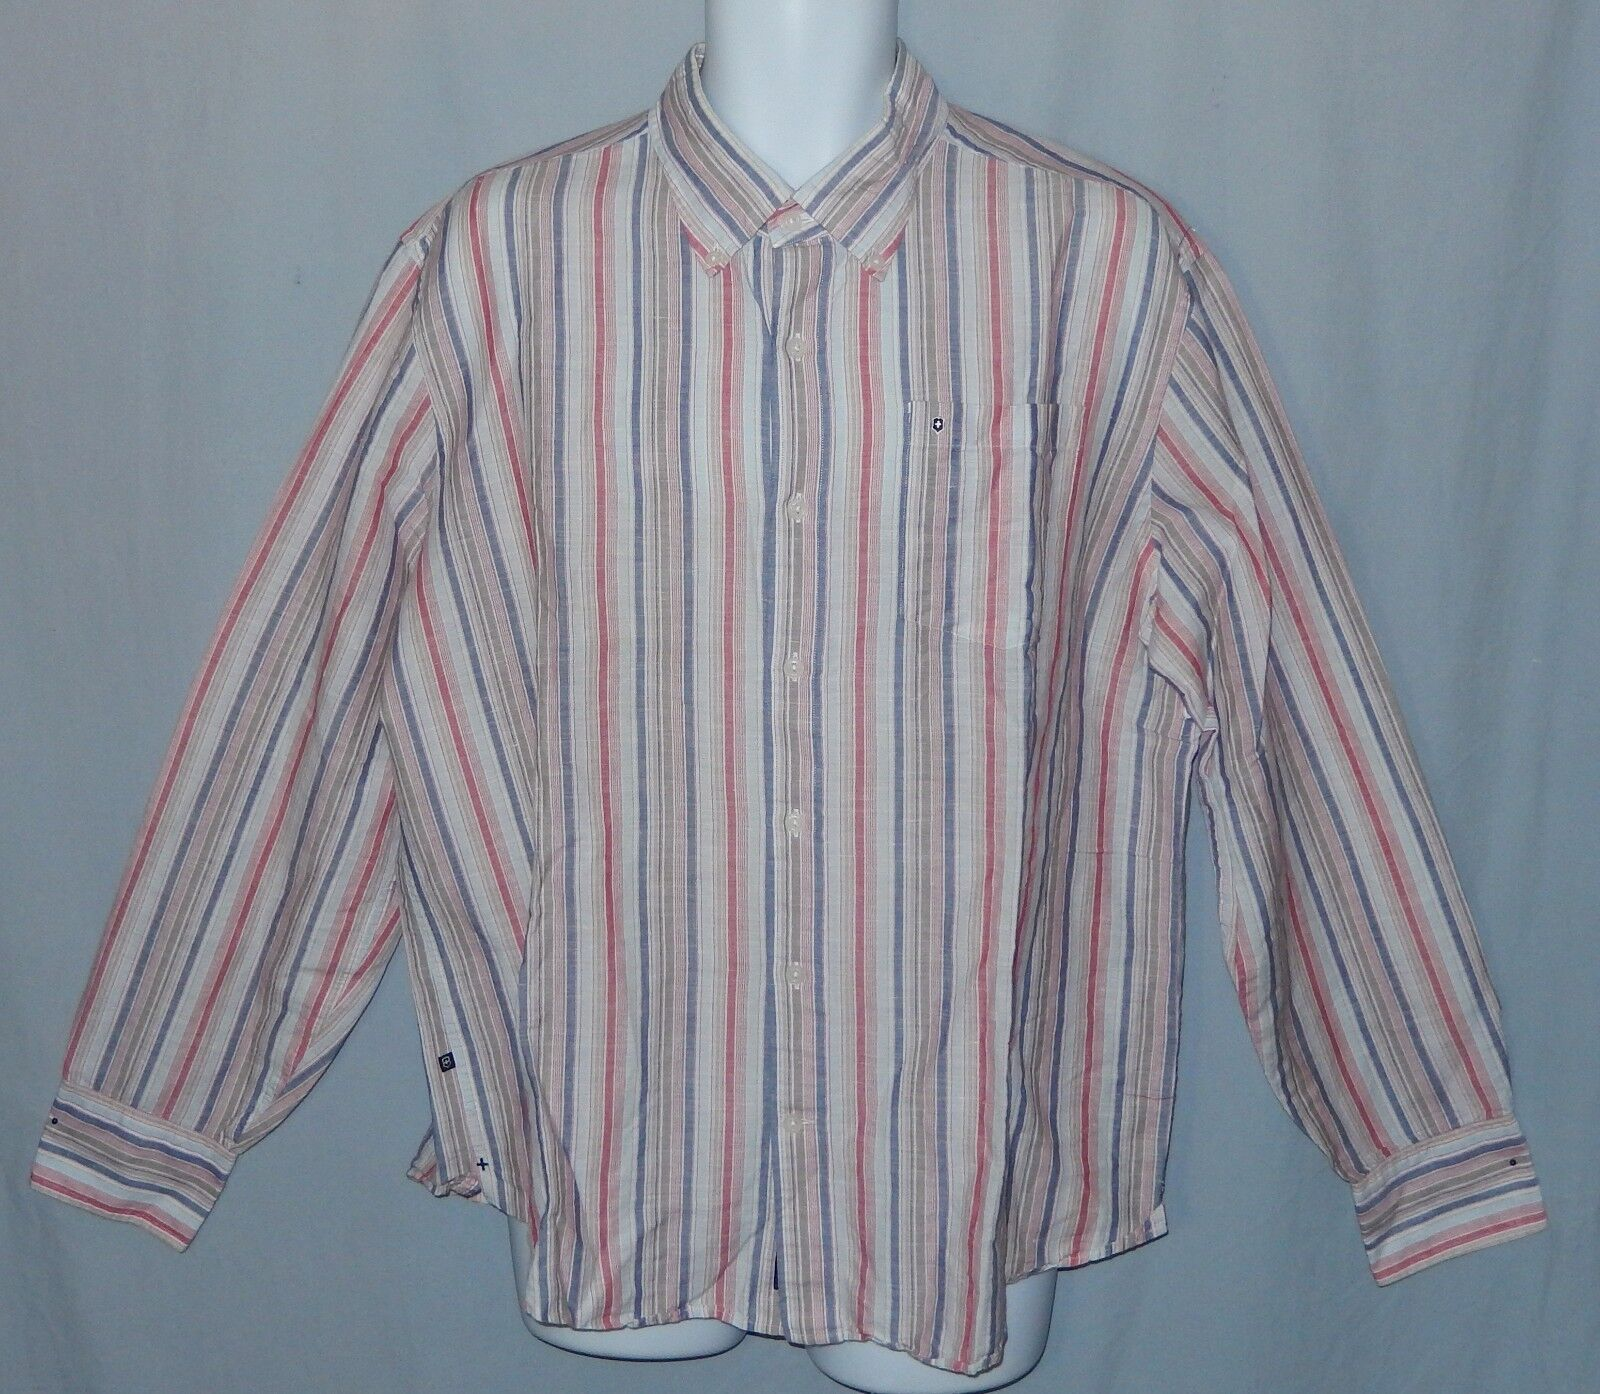 Mens Victorinox Linen Shirt Size XL Tailored Fit Button Down Striped